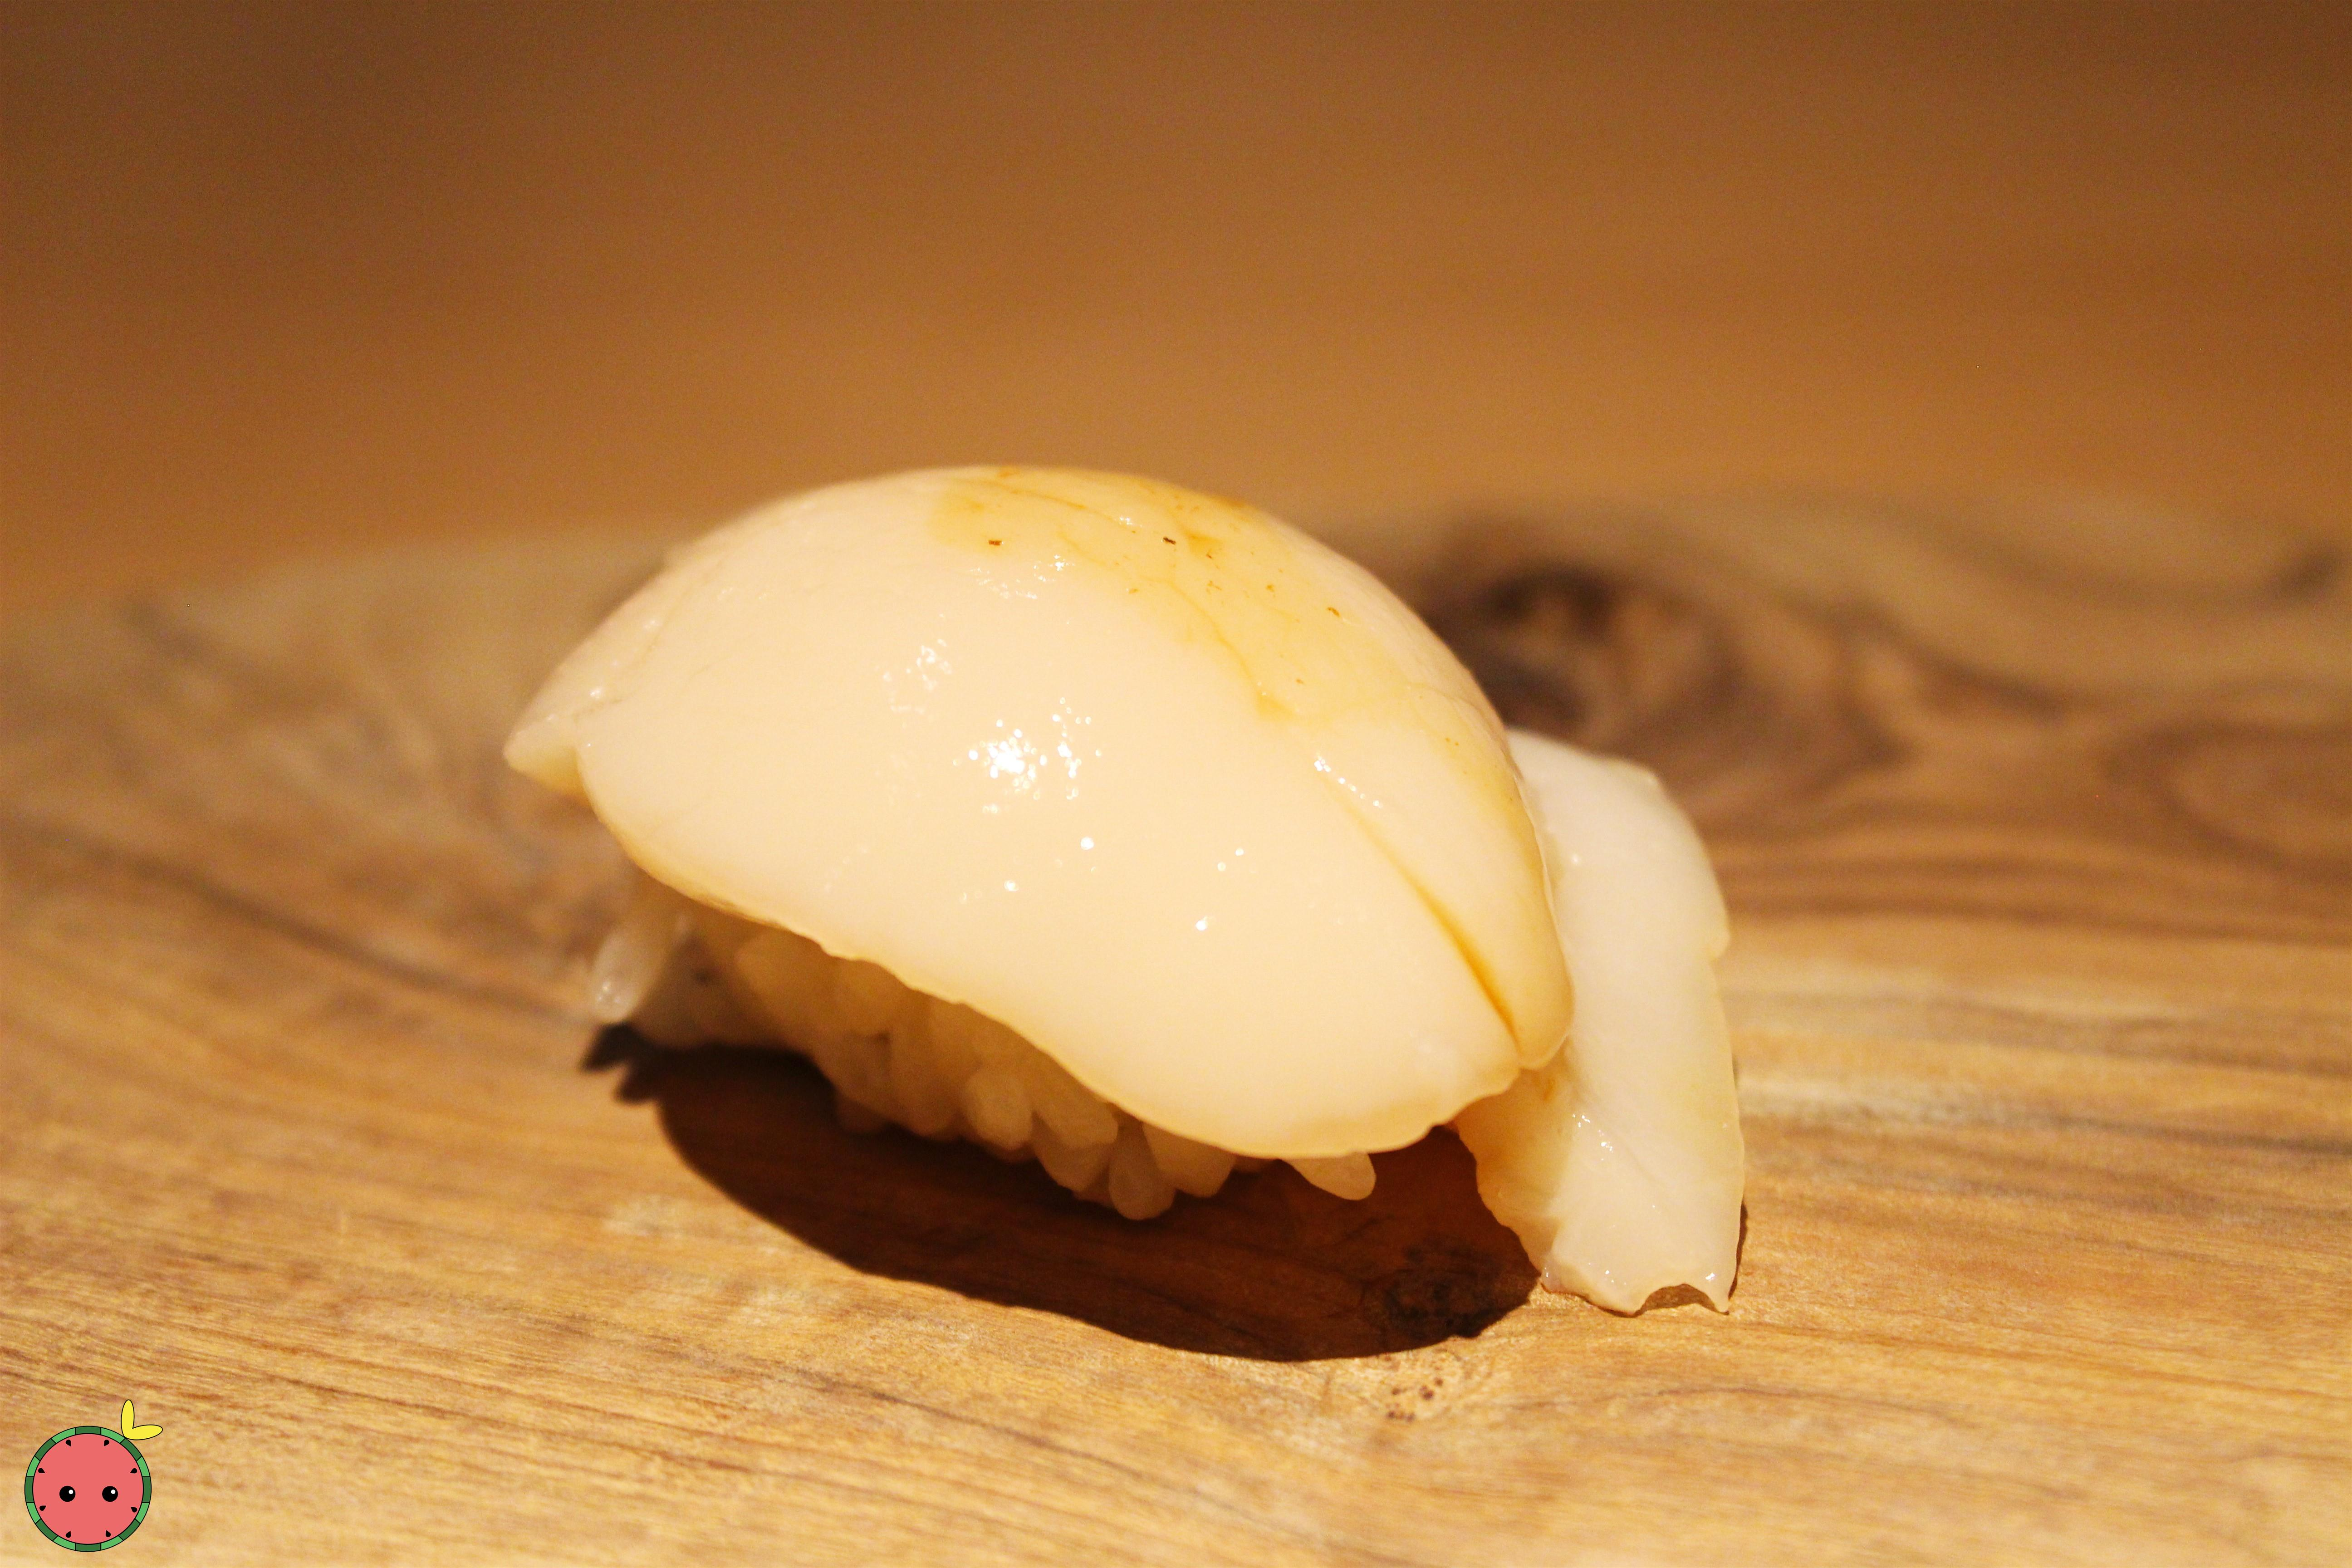 Live scallop from Boston with orange soy sauce